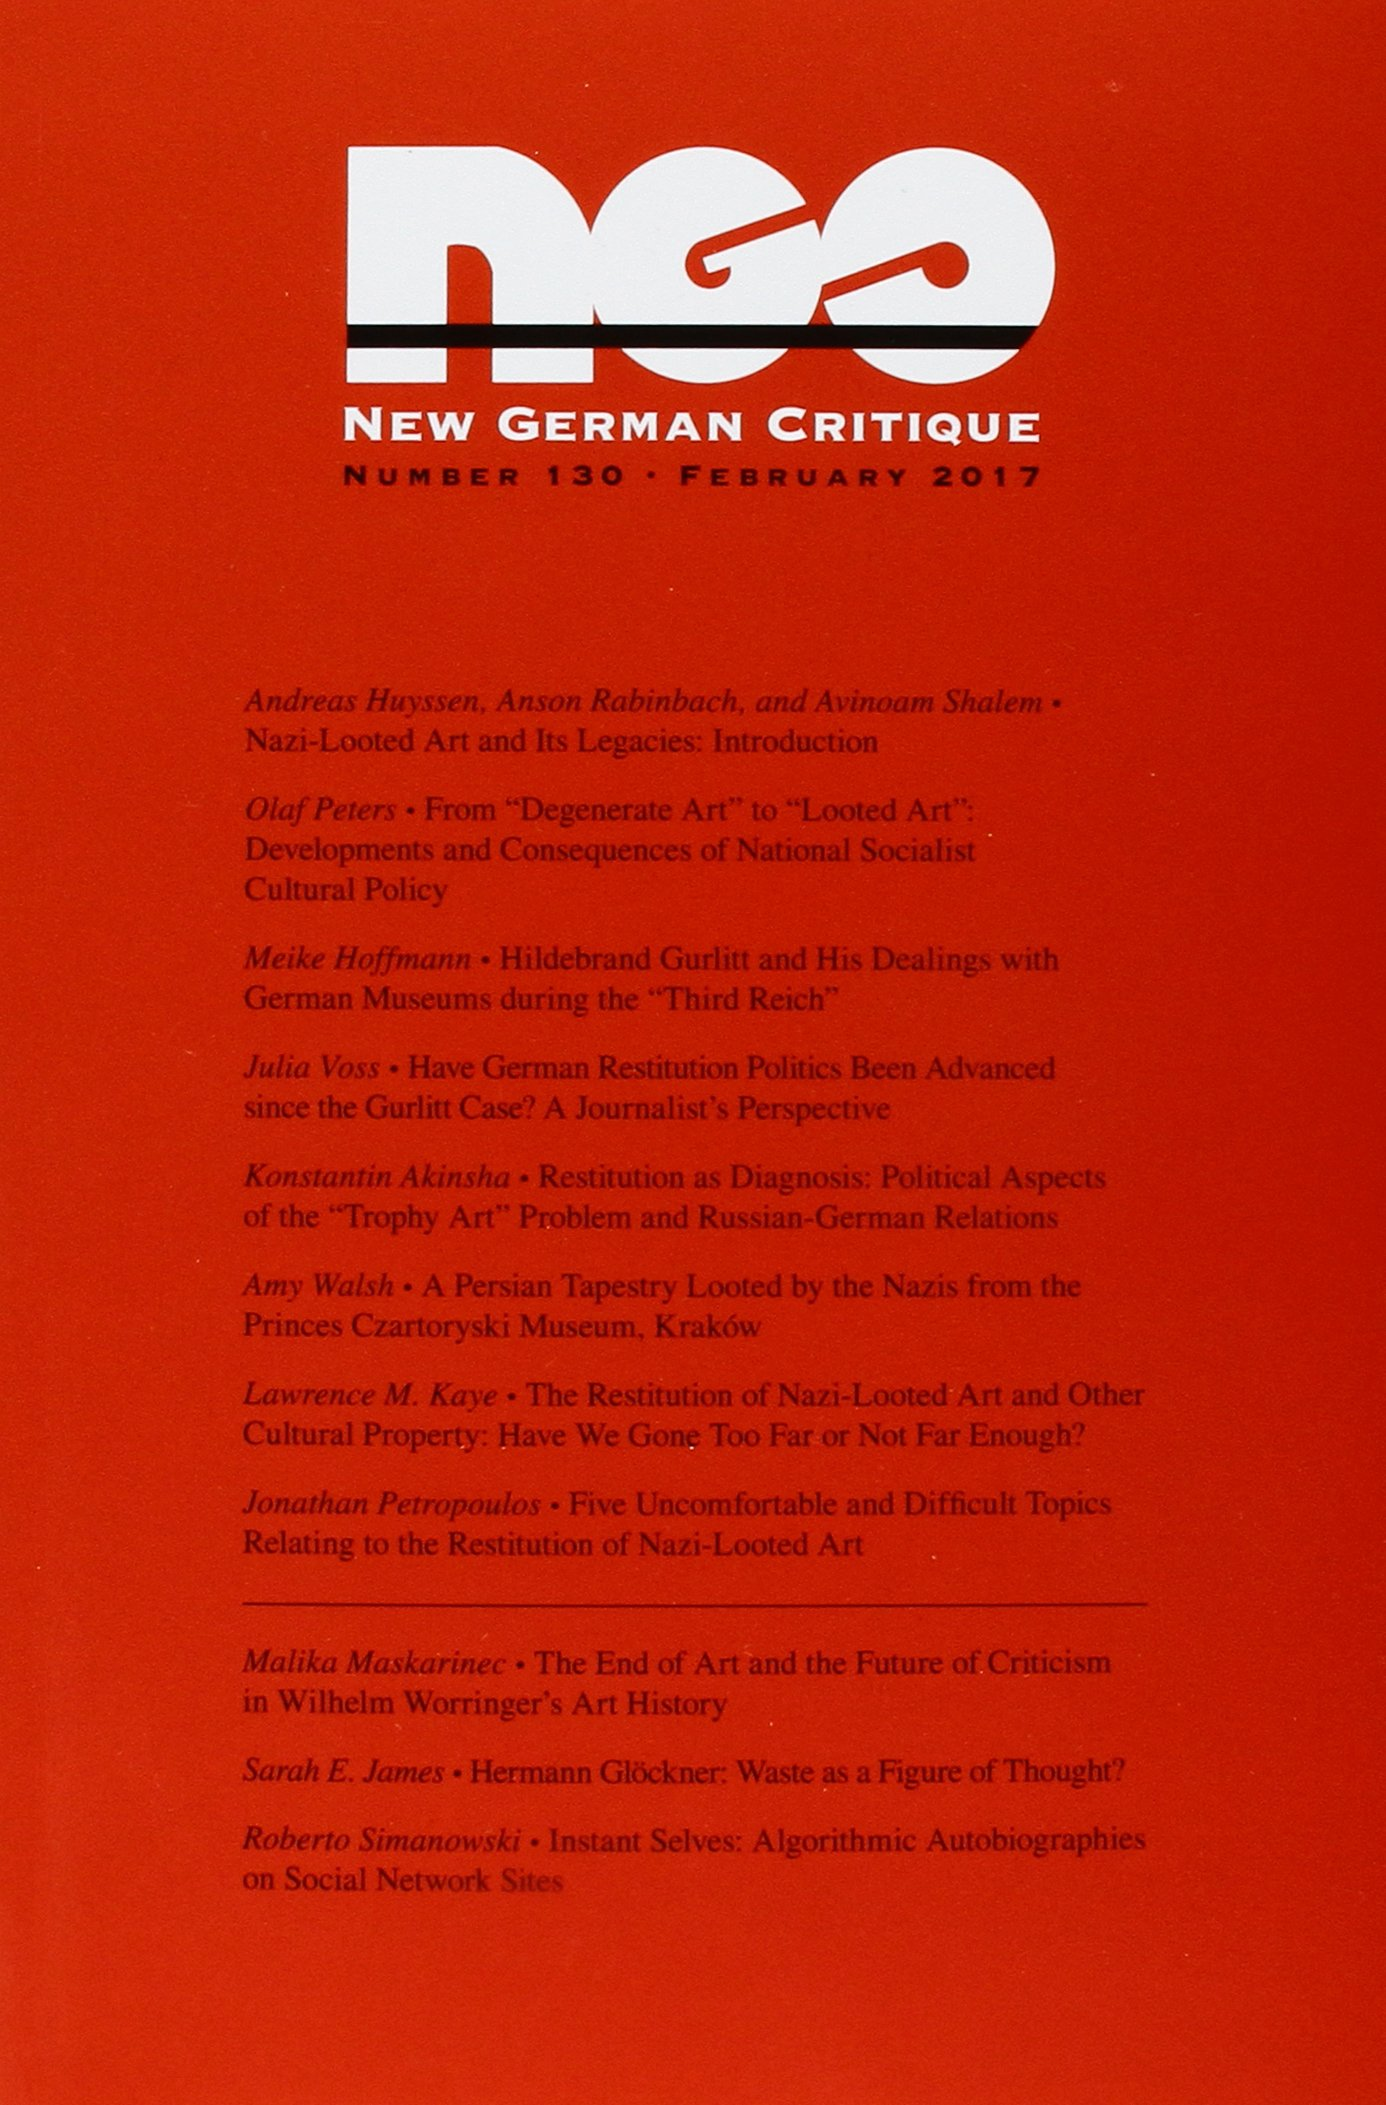 Nazi-Looted Art and Its Legacies (New German Critique, Number 130-February 2017) pdf epub